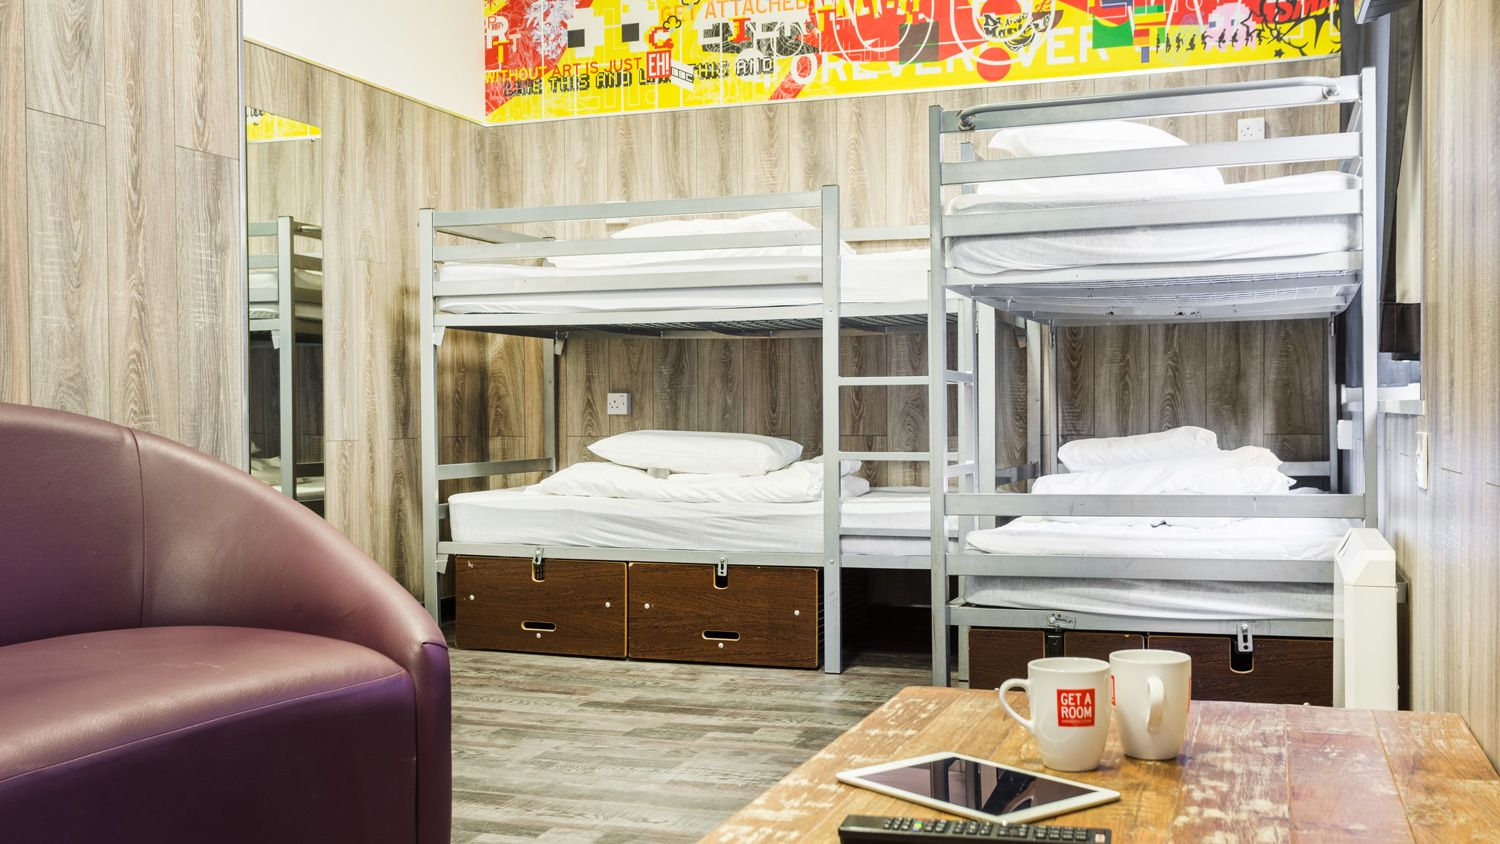 Mini Suite for 6 People at Euro Hostel Newcastle